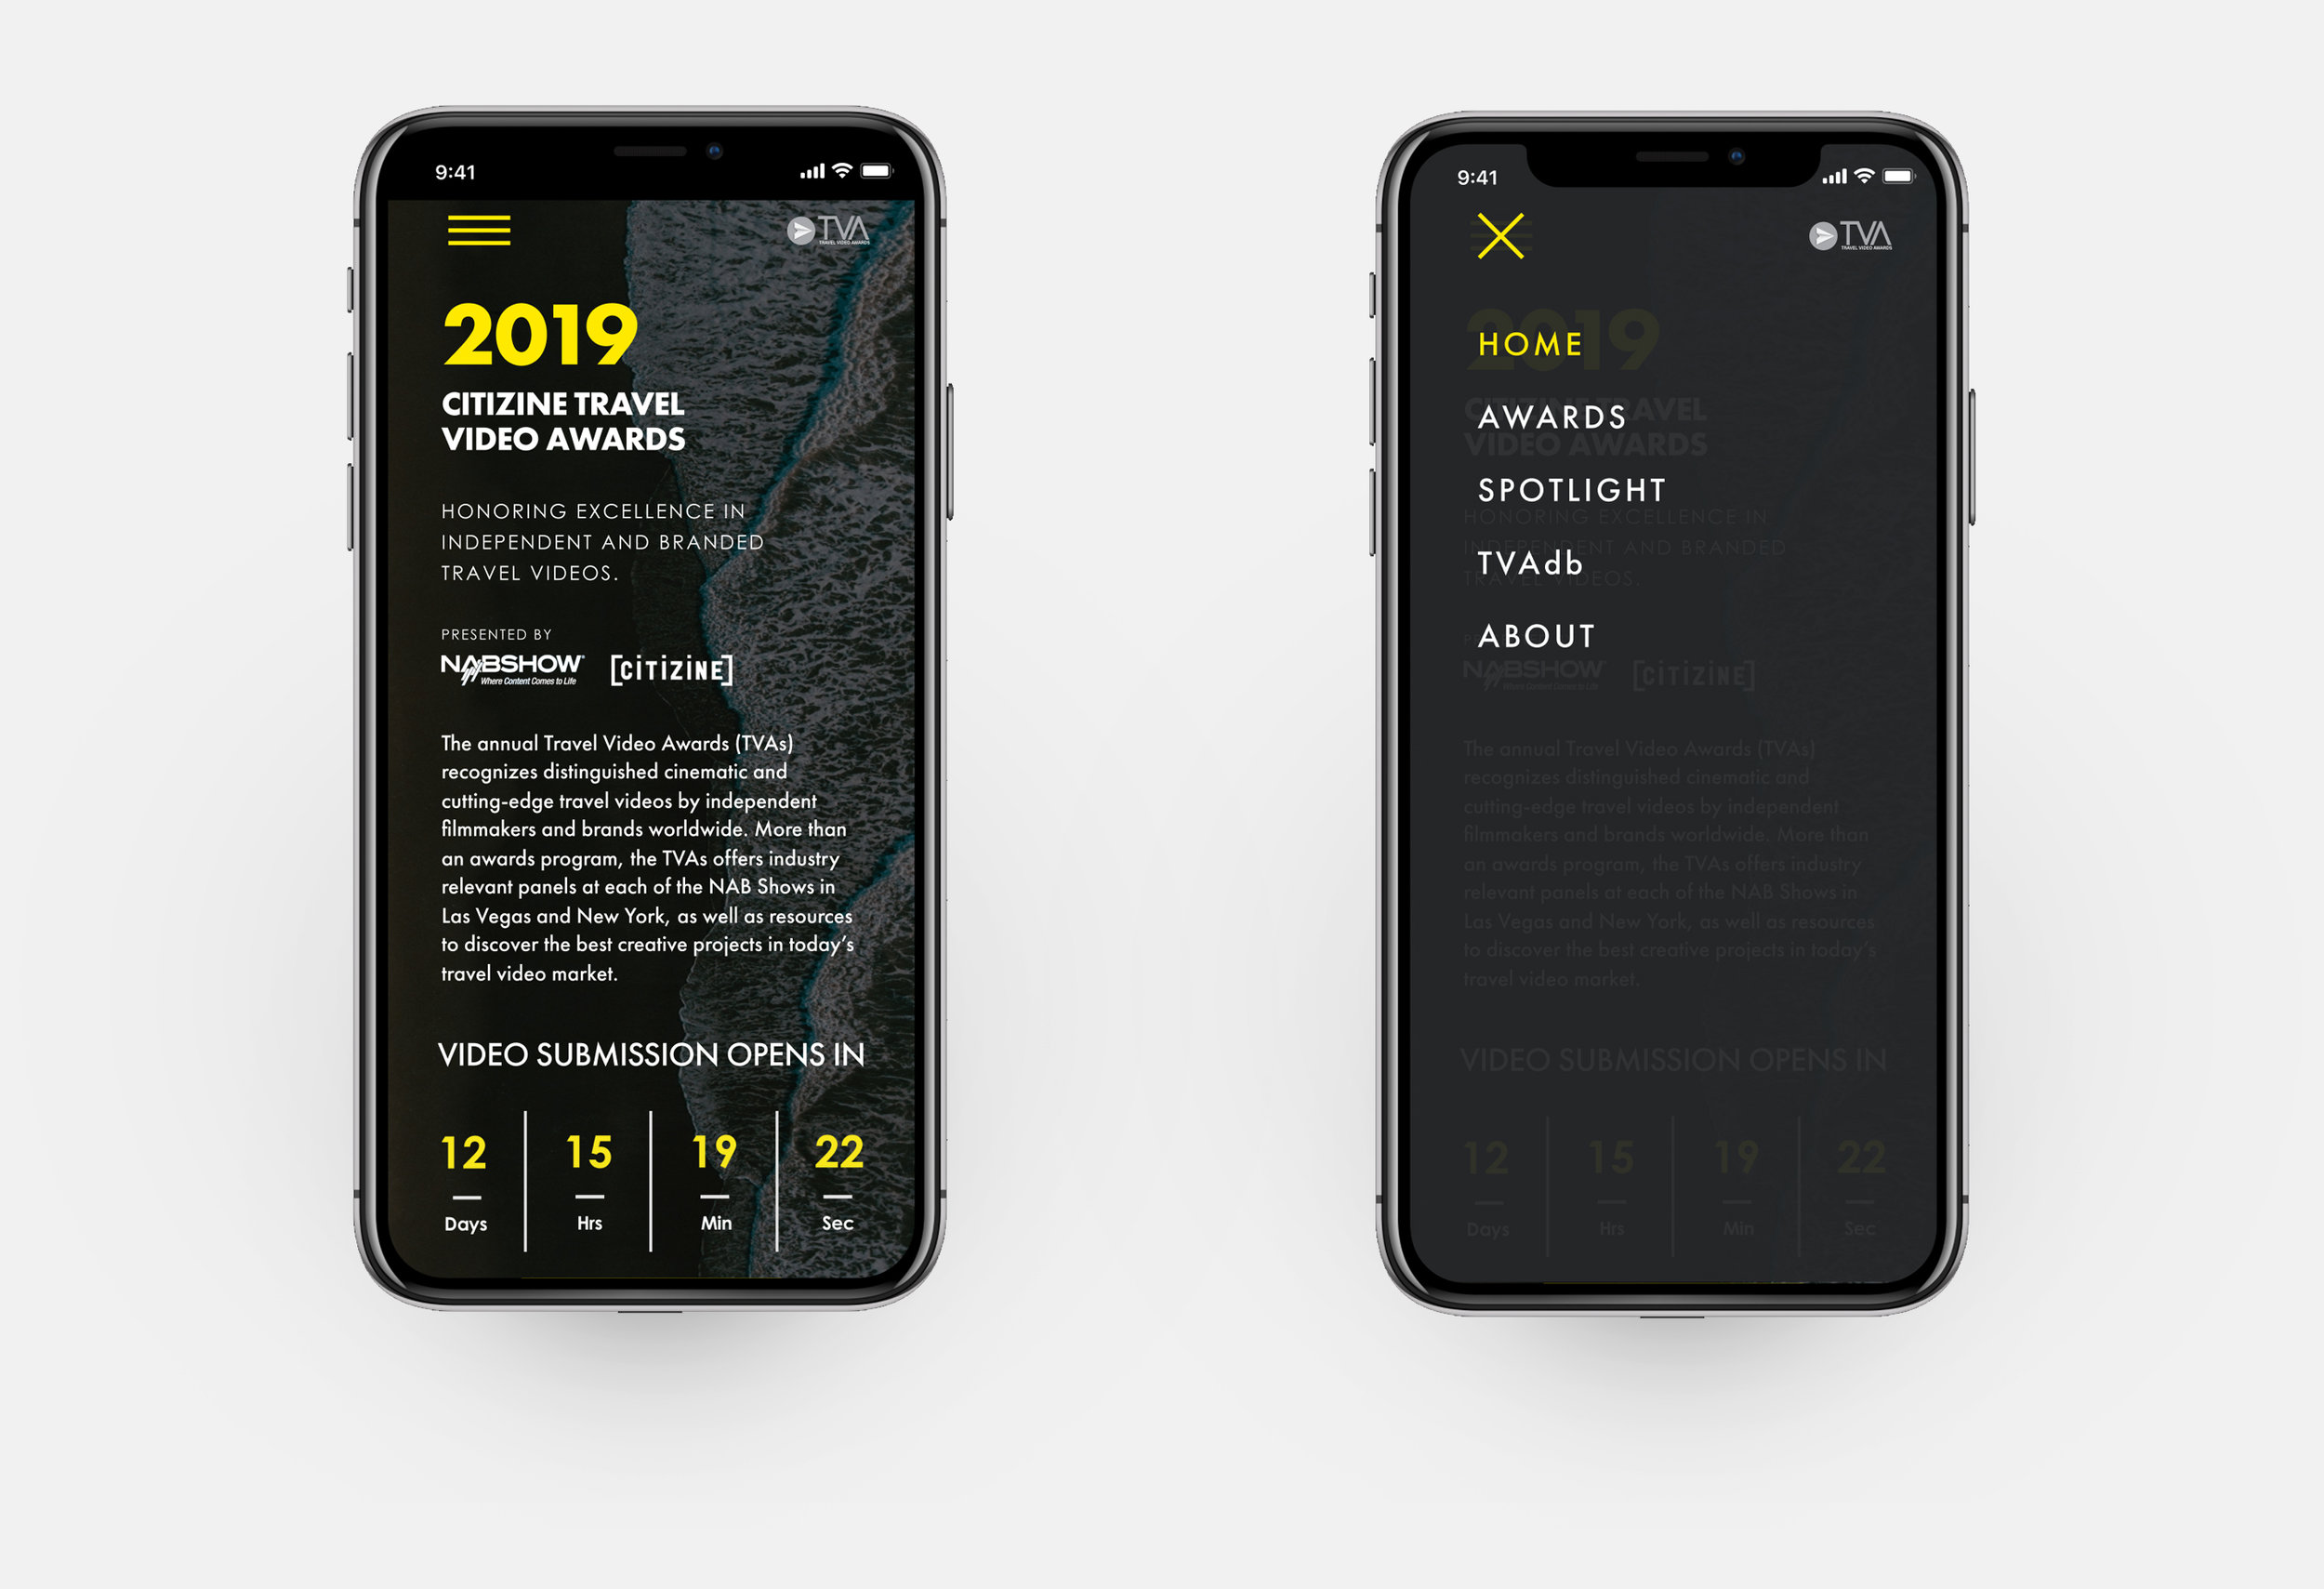 Responsive mobile view